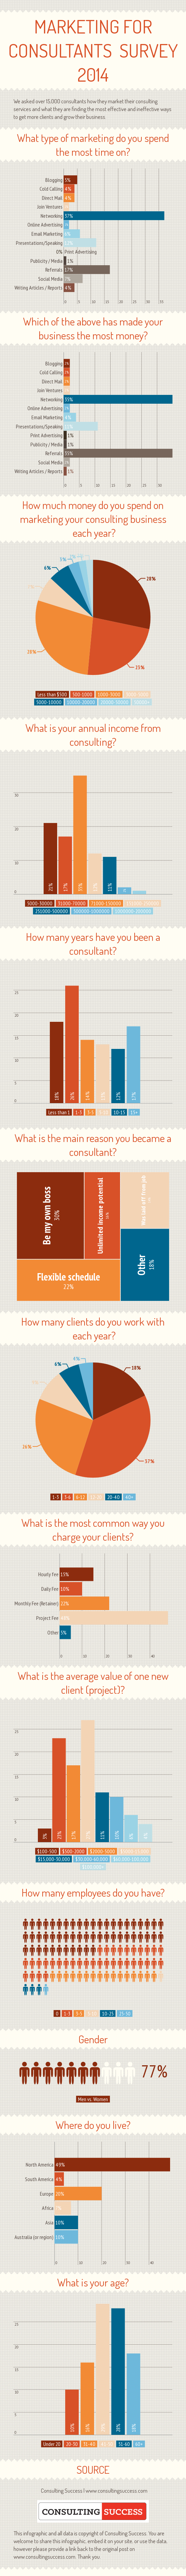 Marketing for Consultants Survey Results 2014